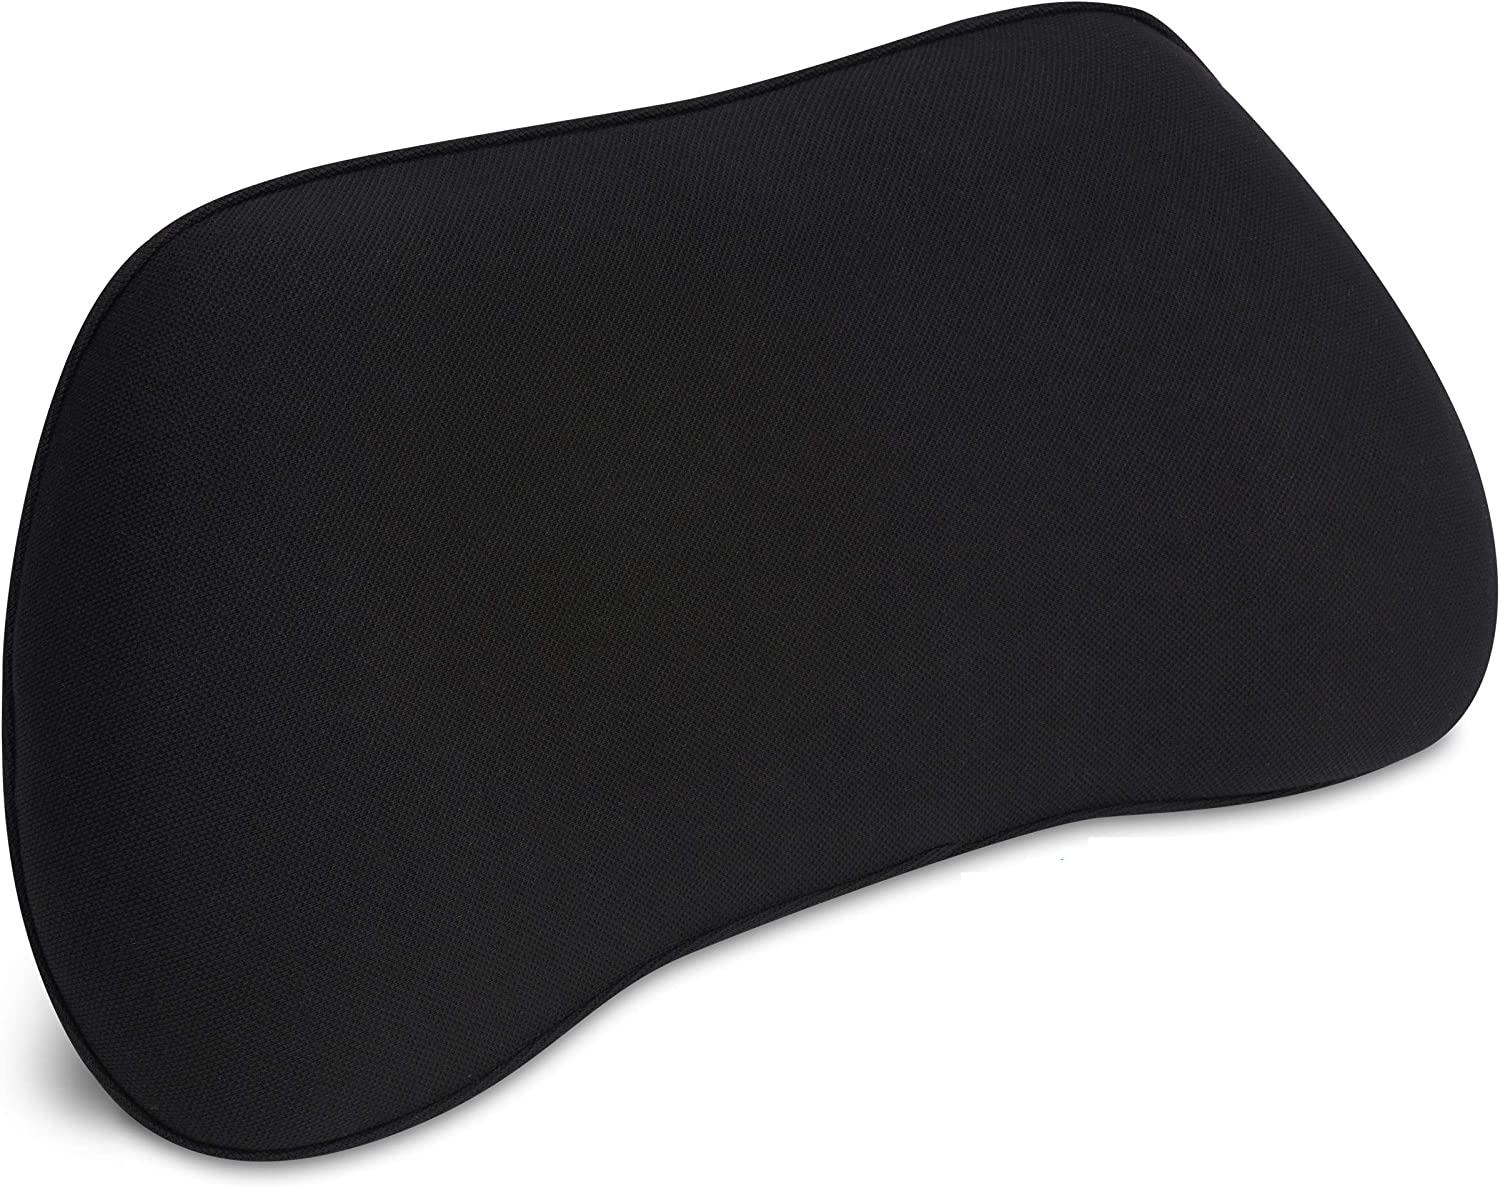 Office Chair Back Support Pillow RS12 RelaxSupport – Lumbar Cushion for Upper and Lower Back Pain Uses Special Patented Technology Has Unique Lateral Convex Orthopedic Shape for a Pain Free Back